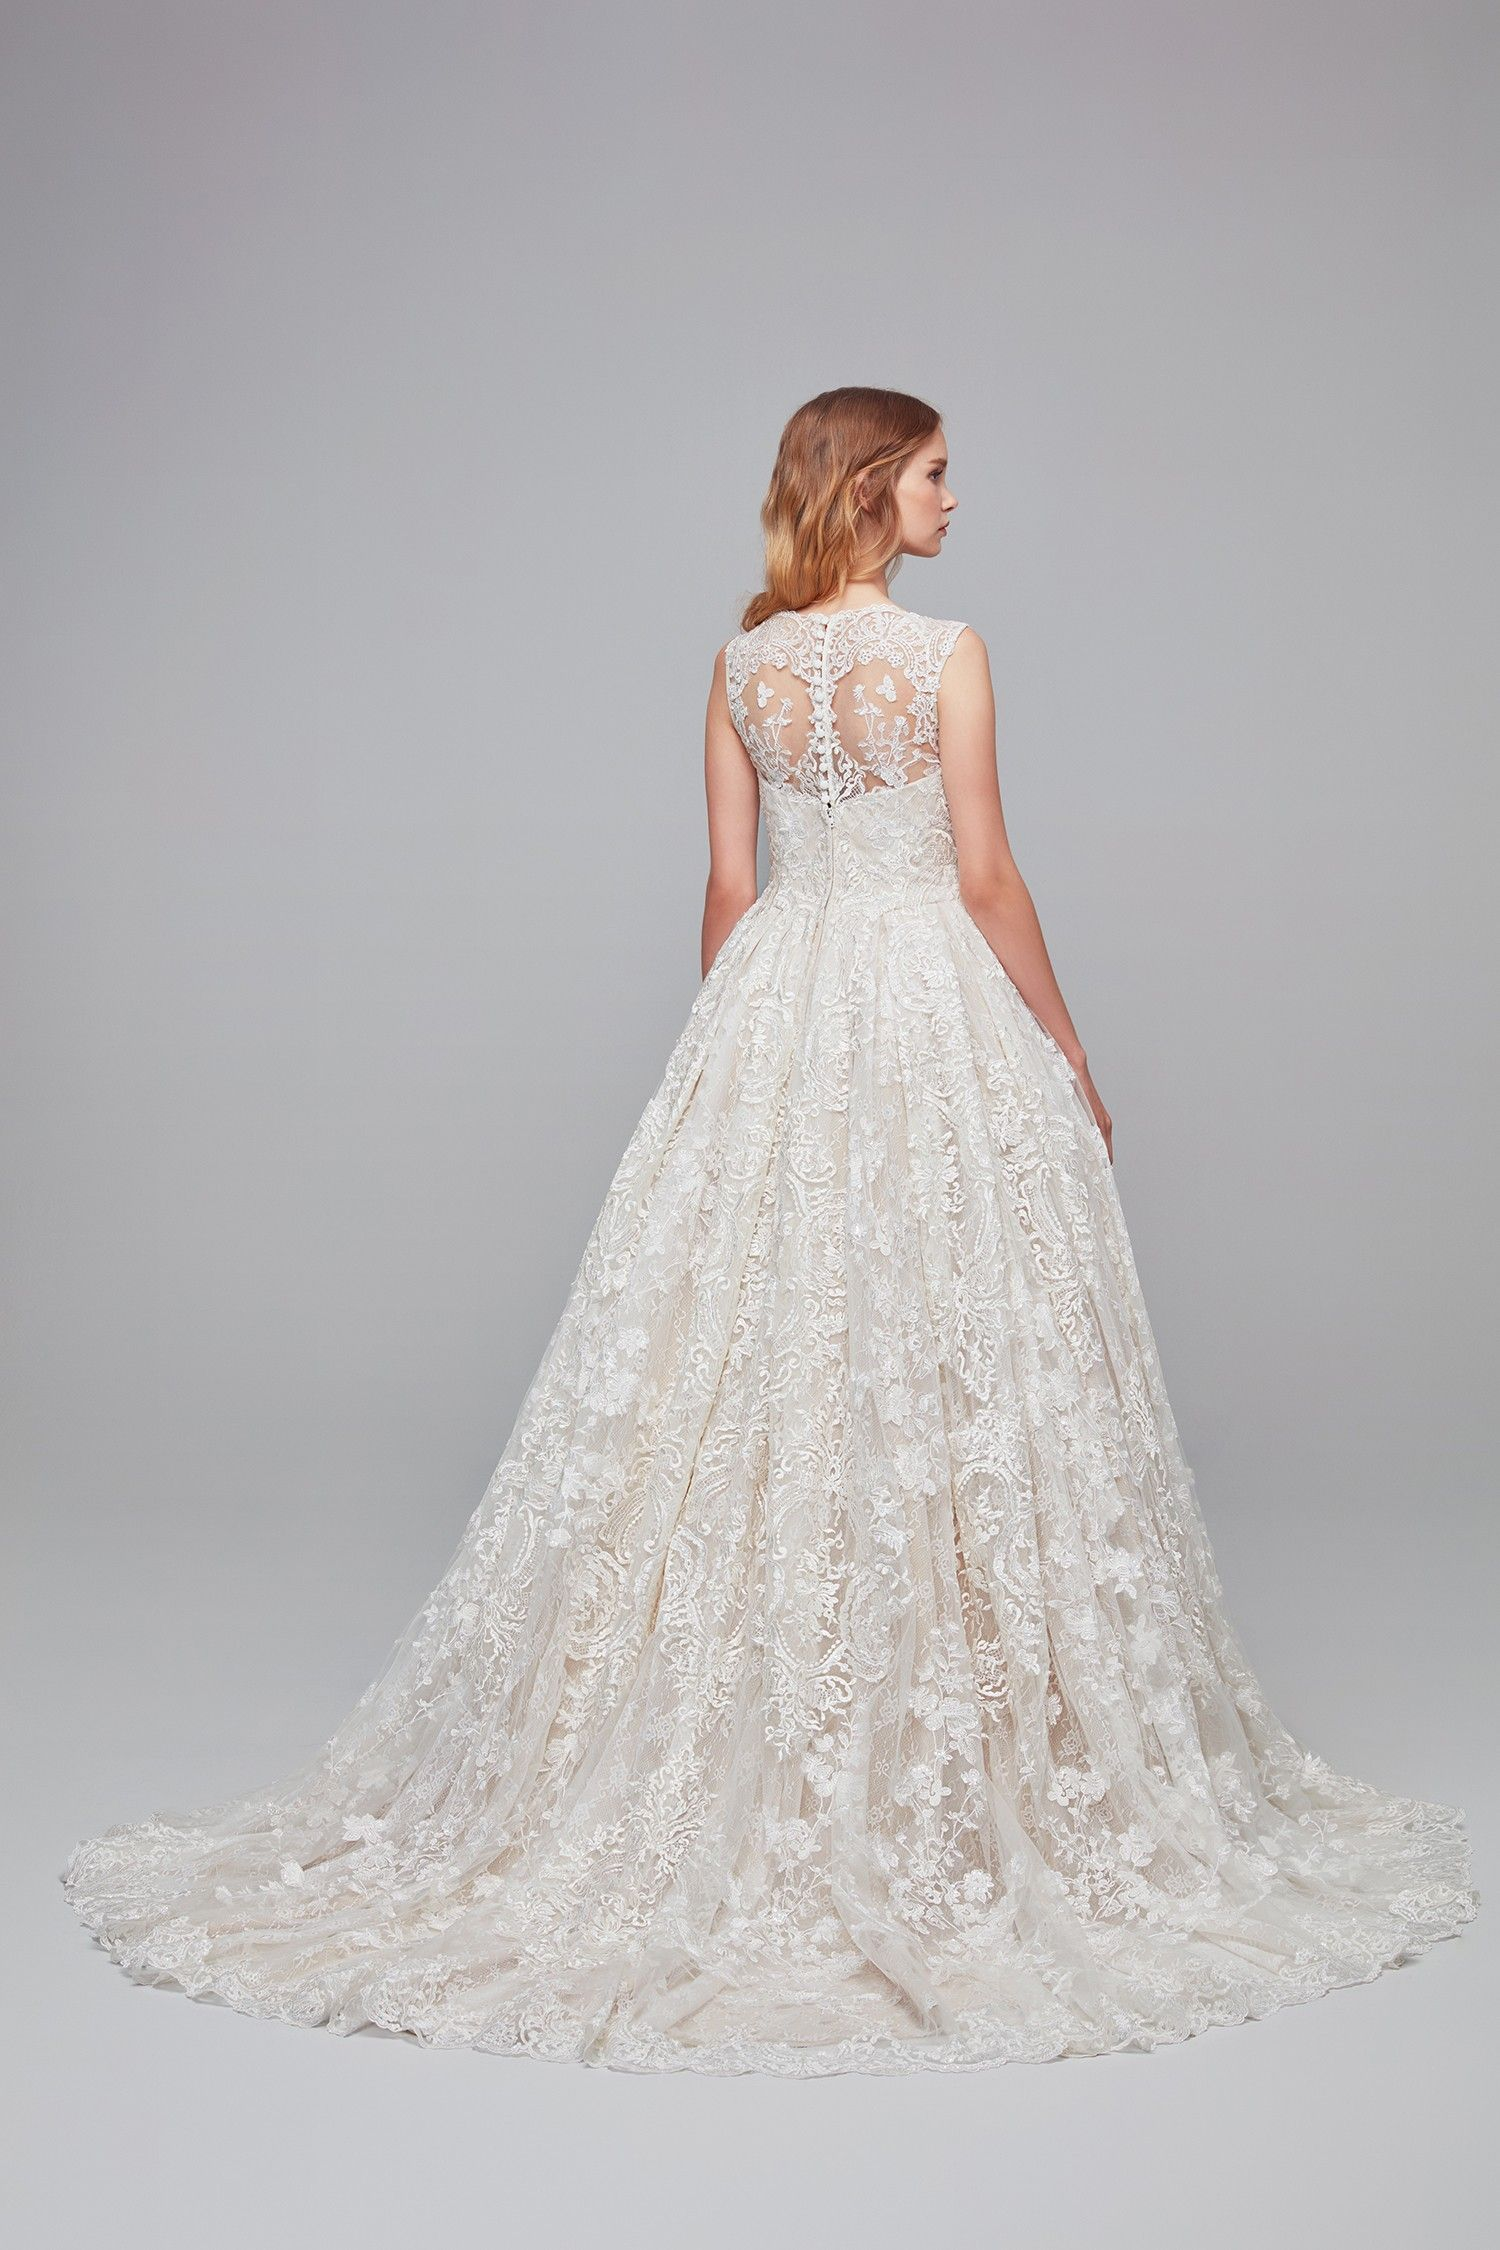 Beaded Lace Wedding Dress With Pleated Skirt Colour Ivory Champagne Style No Cwg7 Beaded Lace Wedding Dress Online Wedding Dress Wedding Dresses Lace